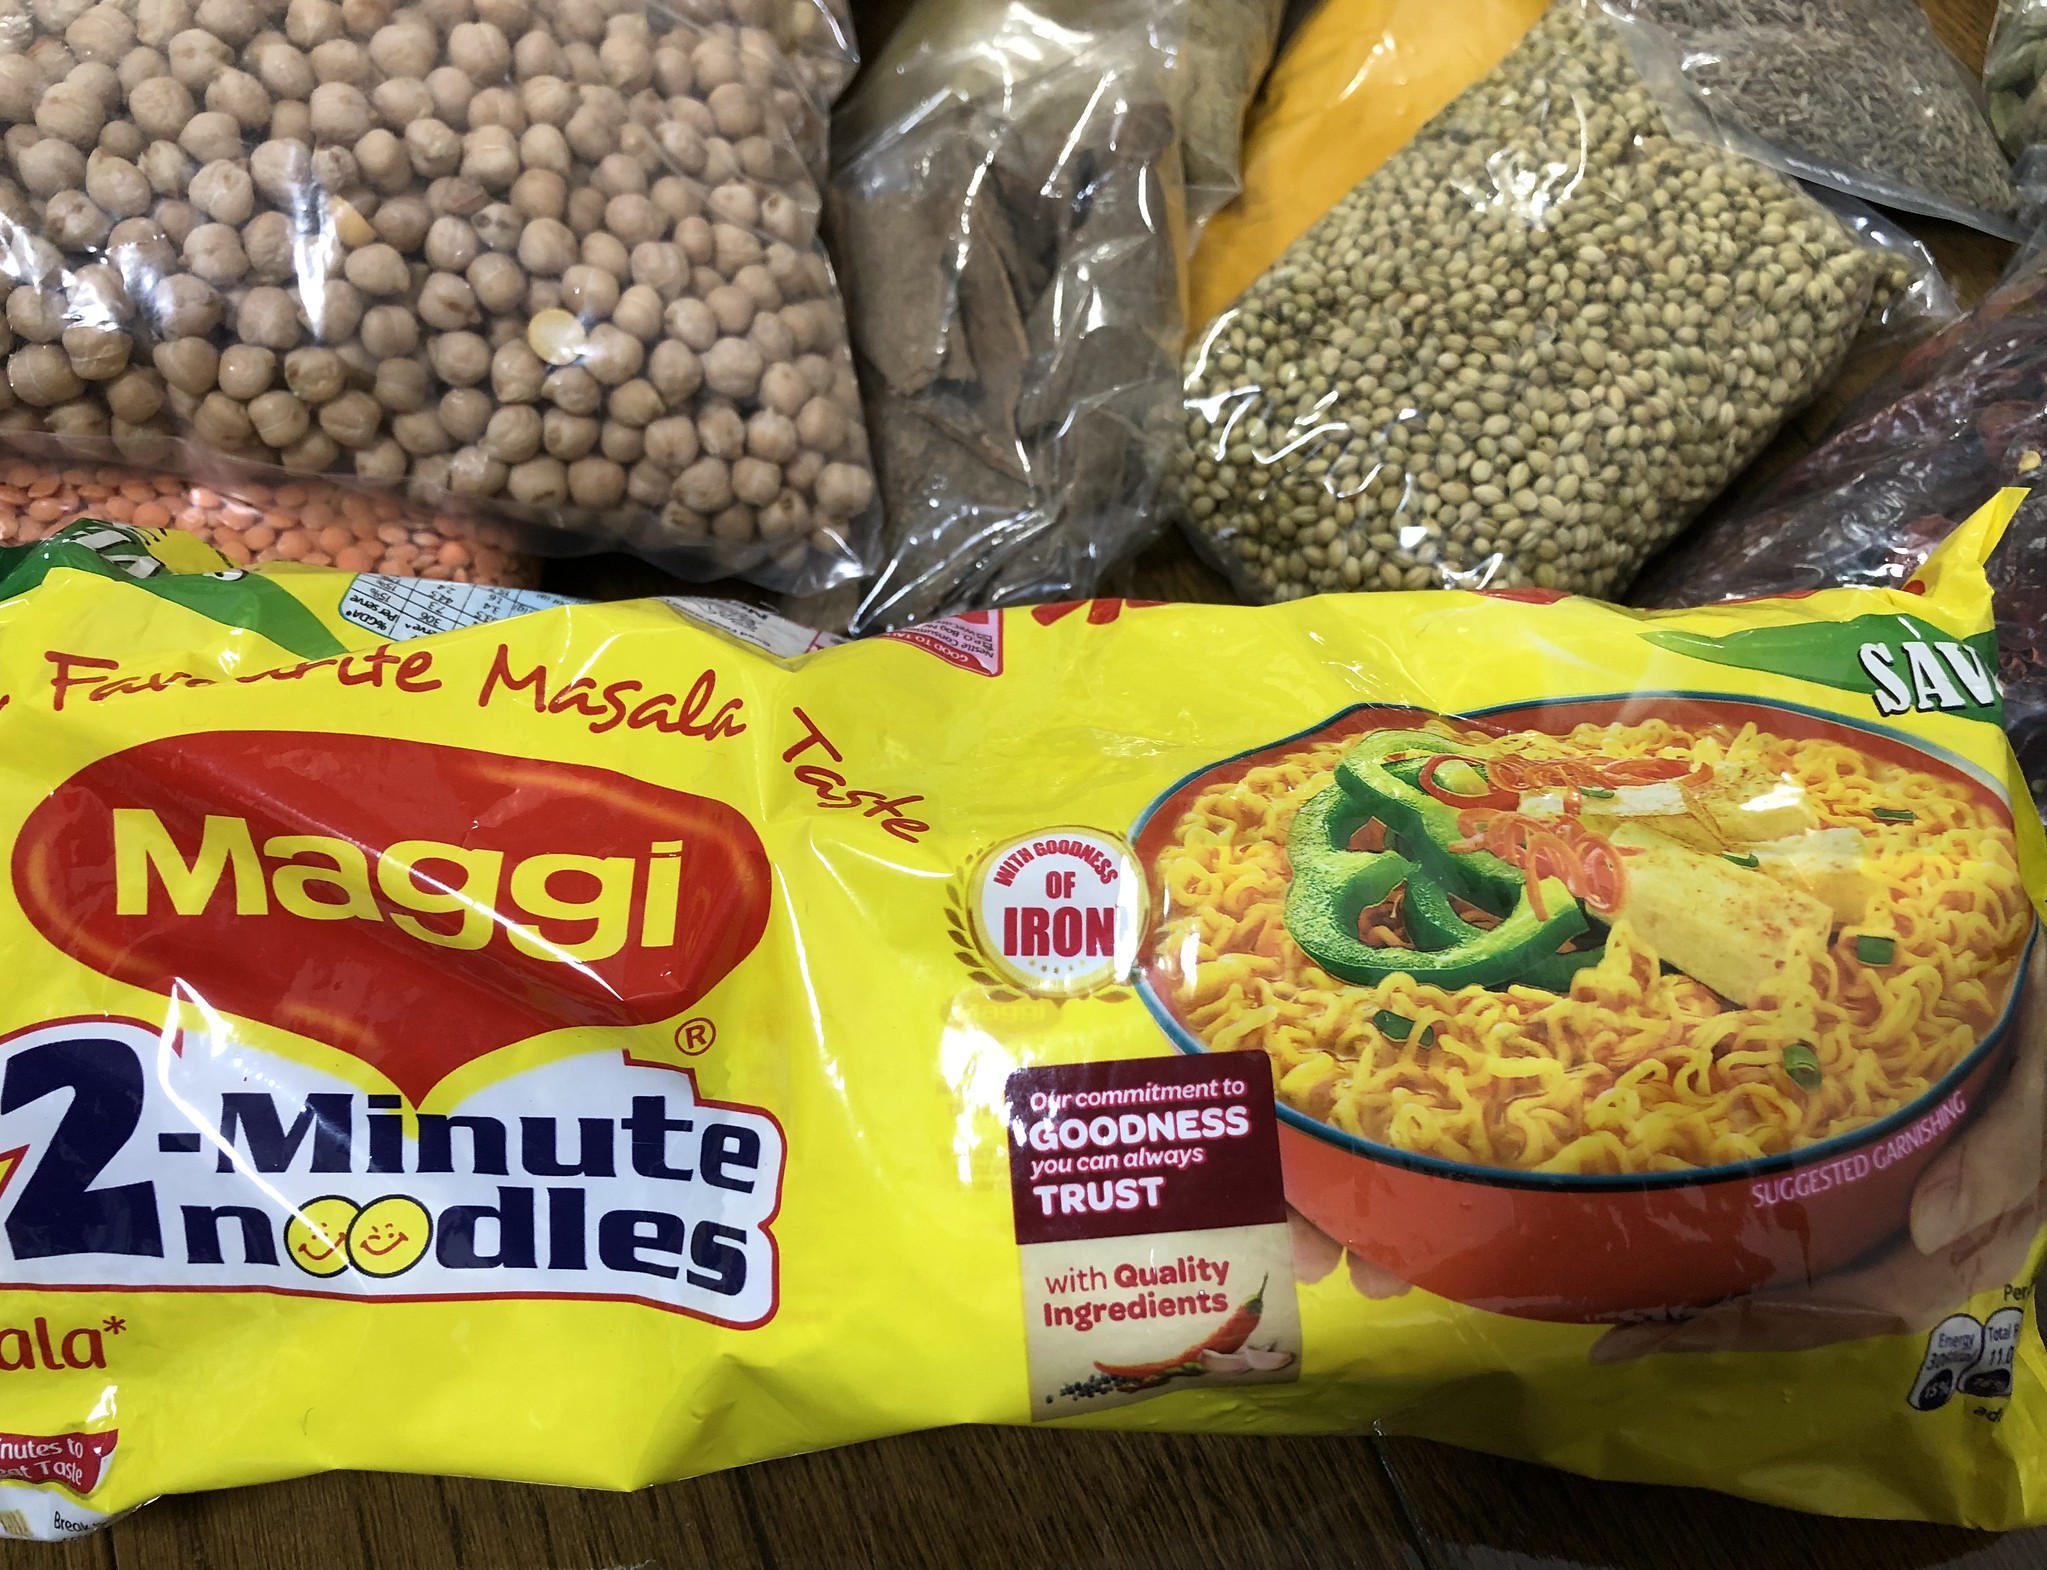 History of Maggi in India